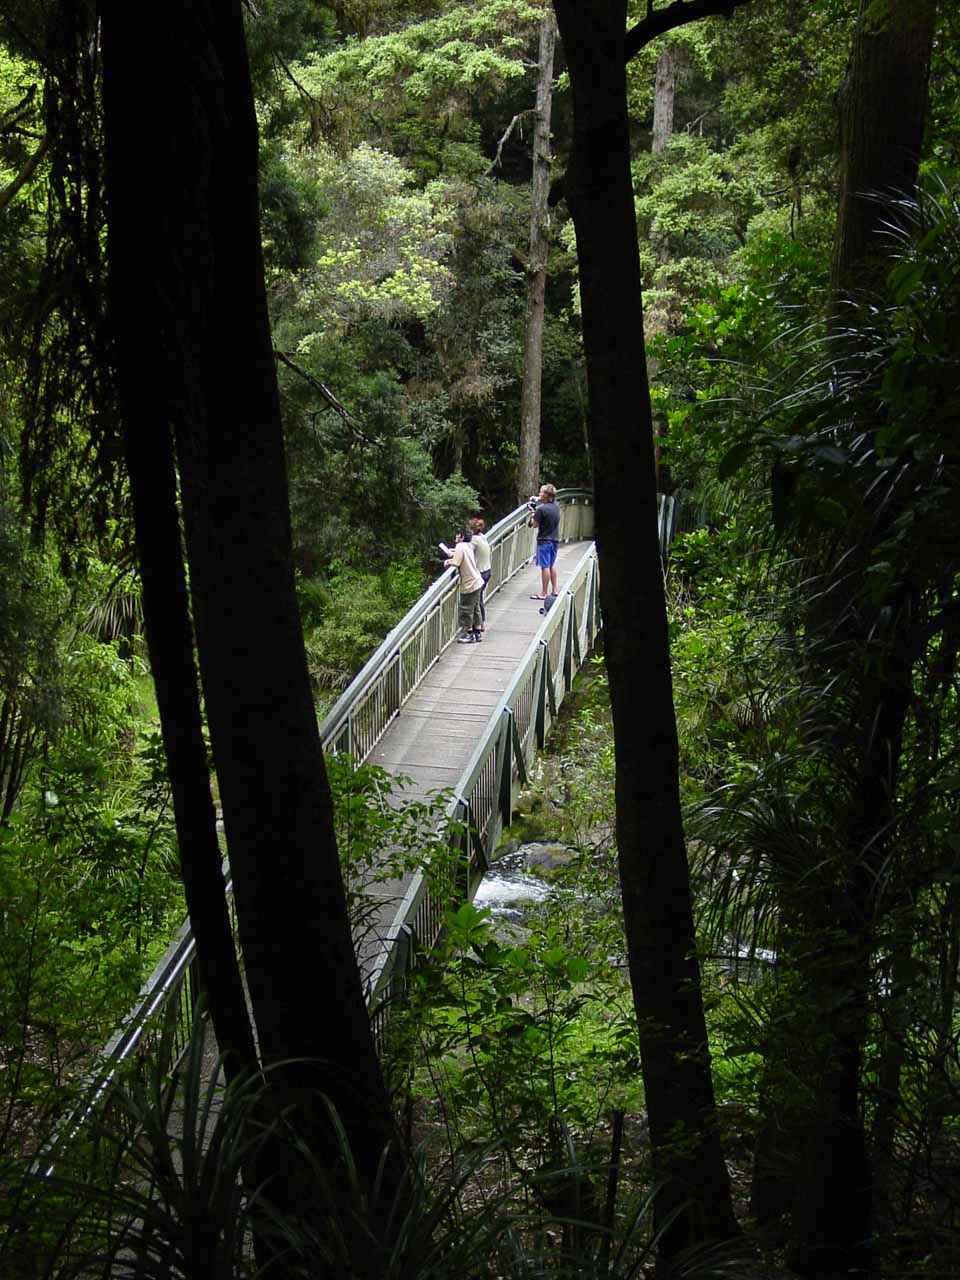 Looking down at the bridge crossing the stream downstream of Whangarei Falls